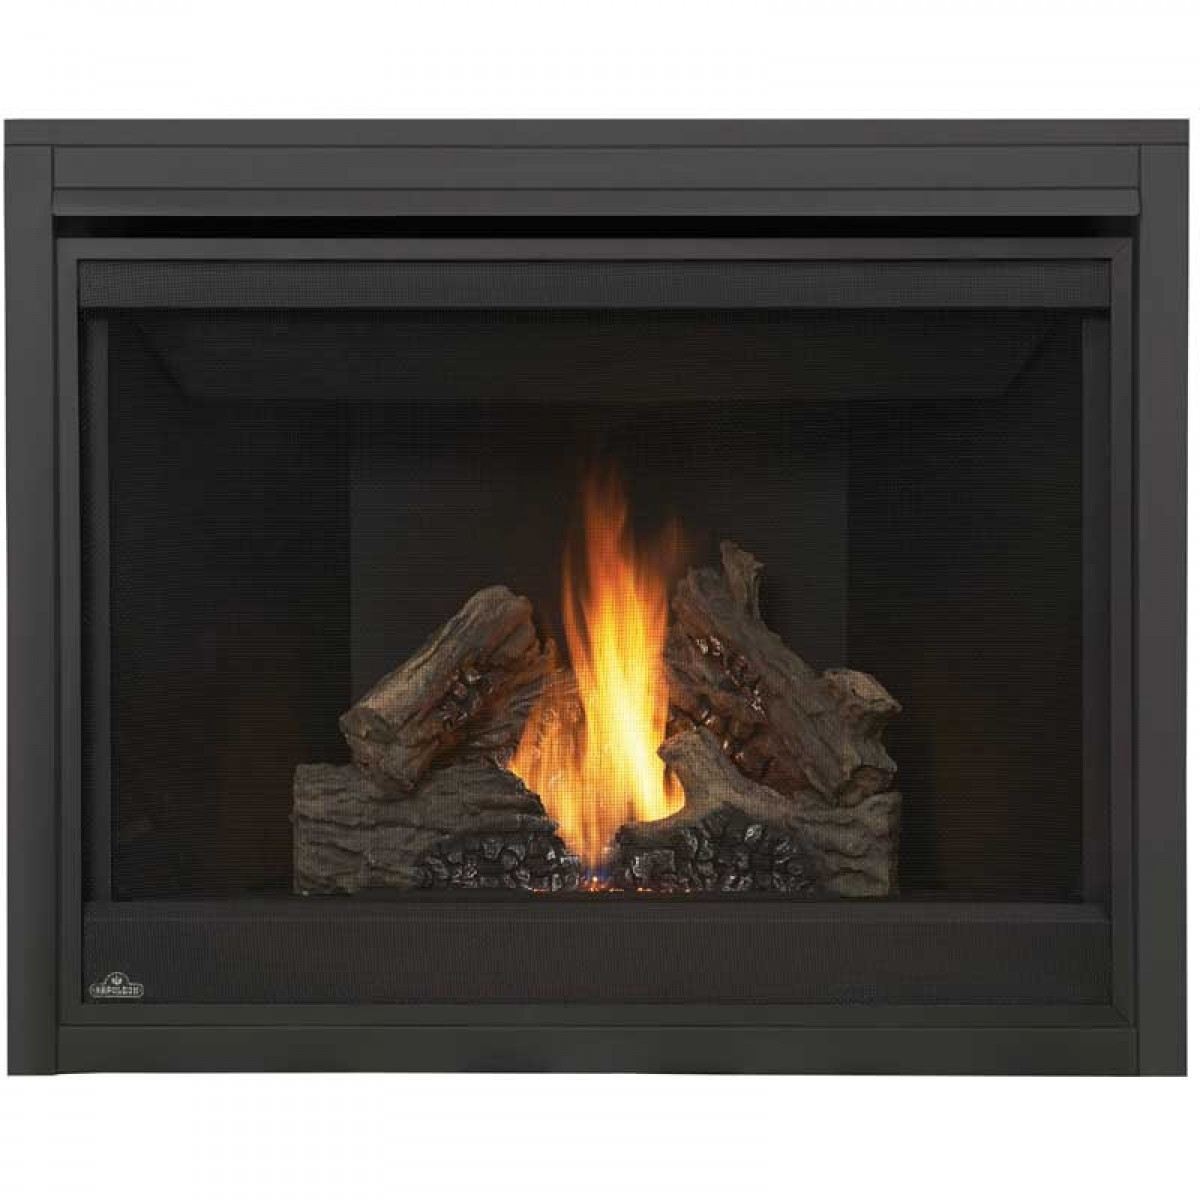 Best ideas about Direct Vent Gas Fireplace . Save or Pin Napoleon Ascent 42 Direct Vent Gas Fireplace Now.